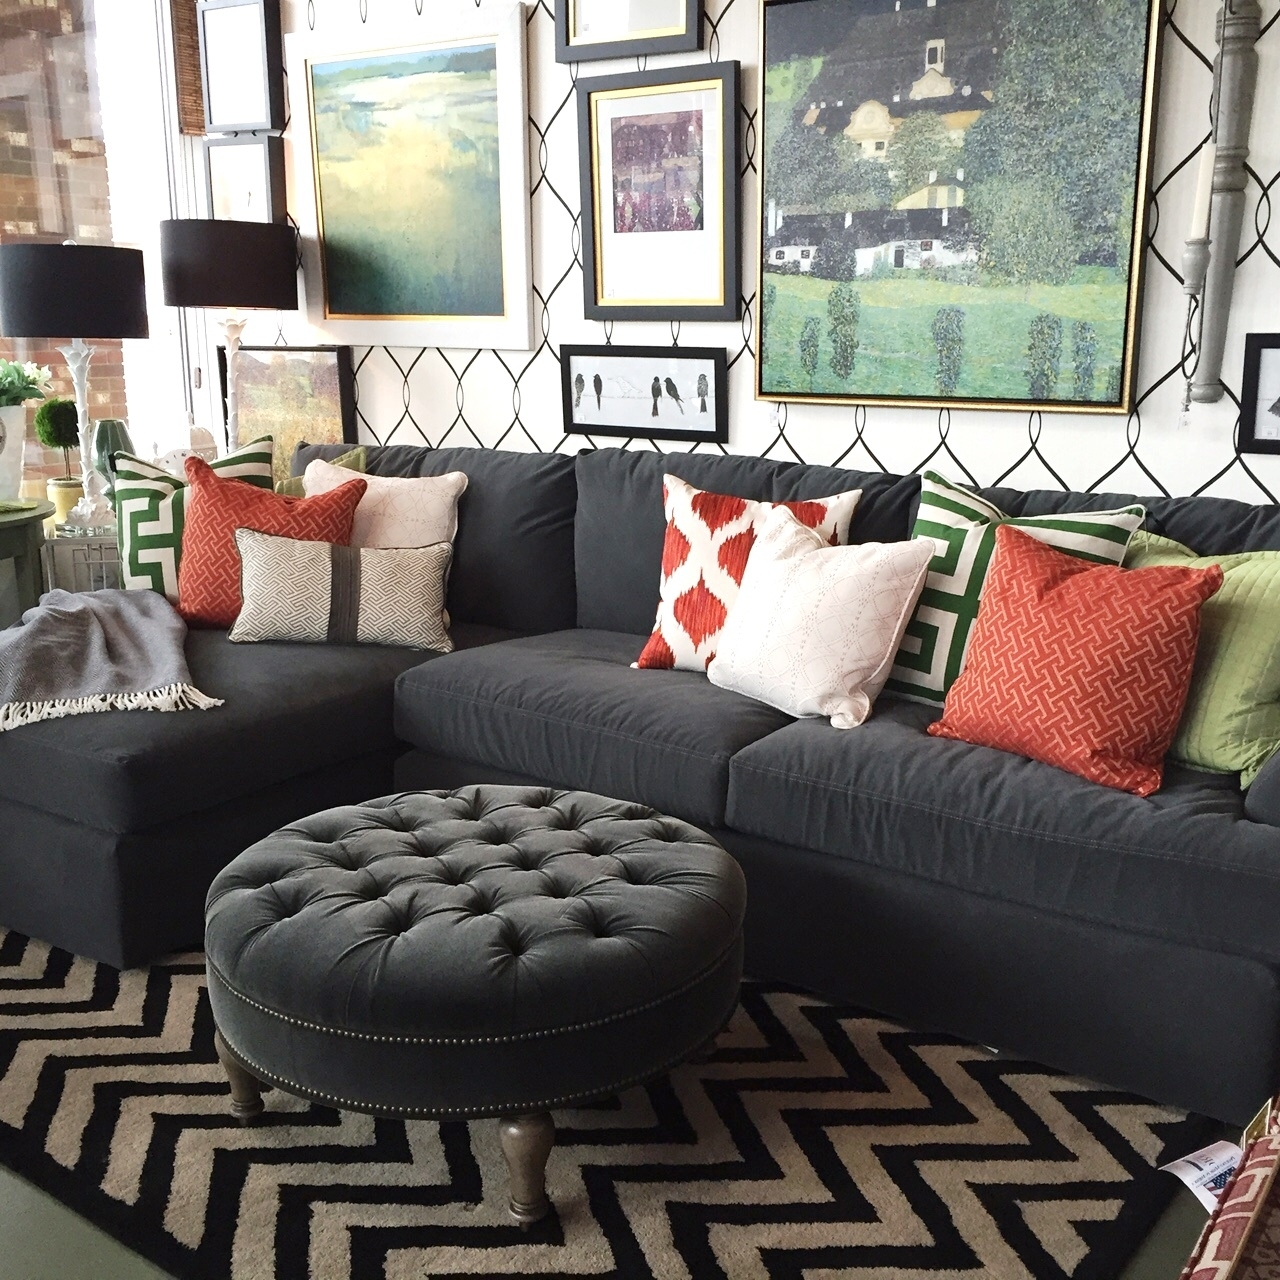 Well Liked Erie Pa Sectional Sofas In Sectional Sofas In Small Spaces (View 8 of 20)